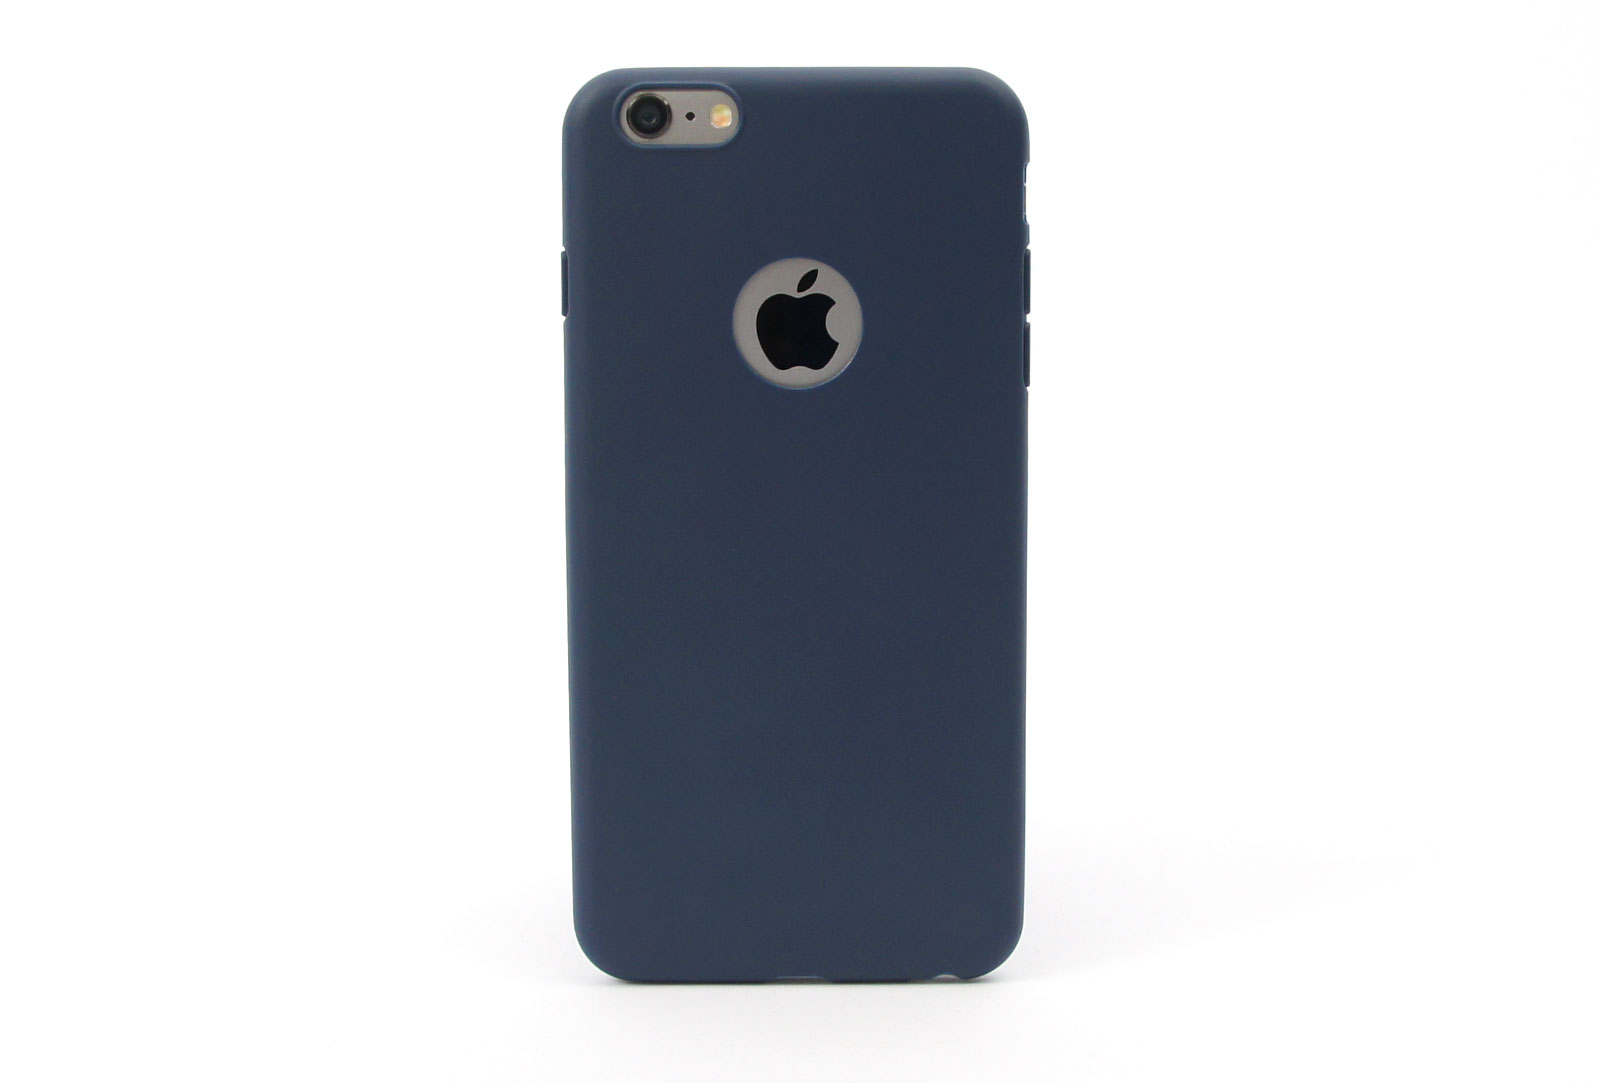 coque silicone souple bleu marine pour iphone 6 s plus et iphone 6 plus. Black Bedroom Furniture Sets. Home Design Ideas